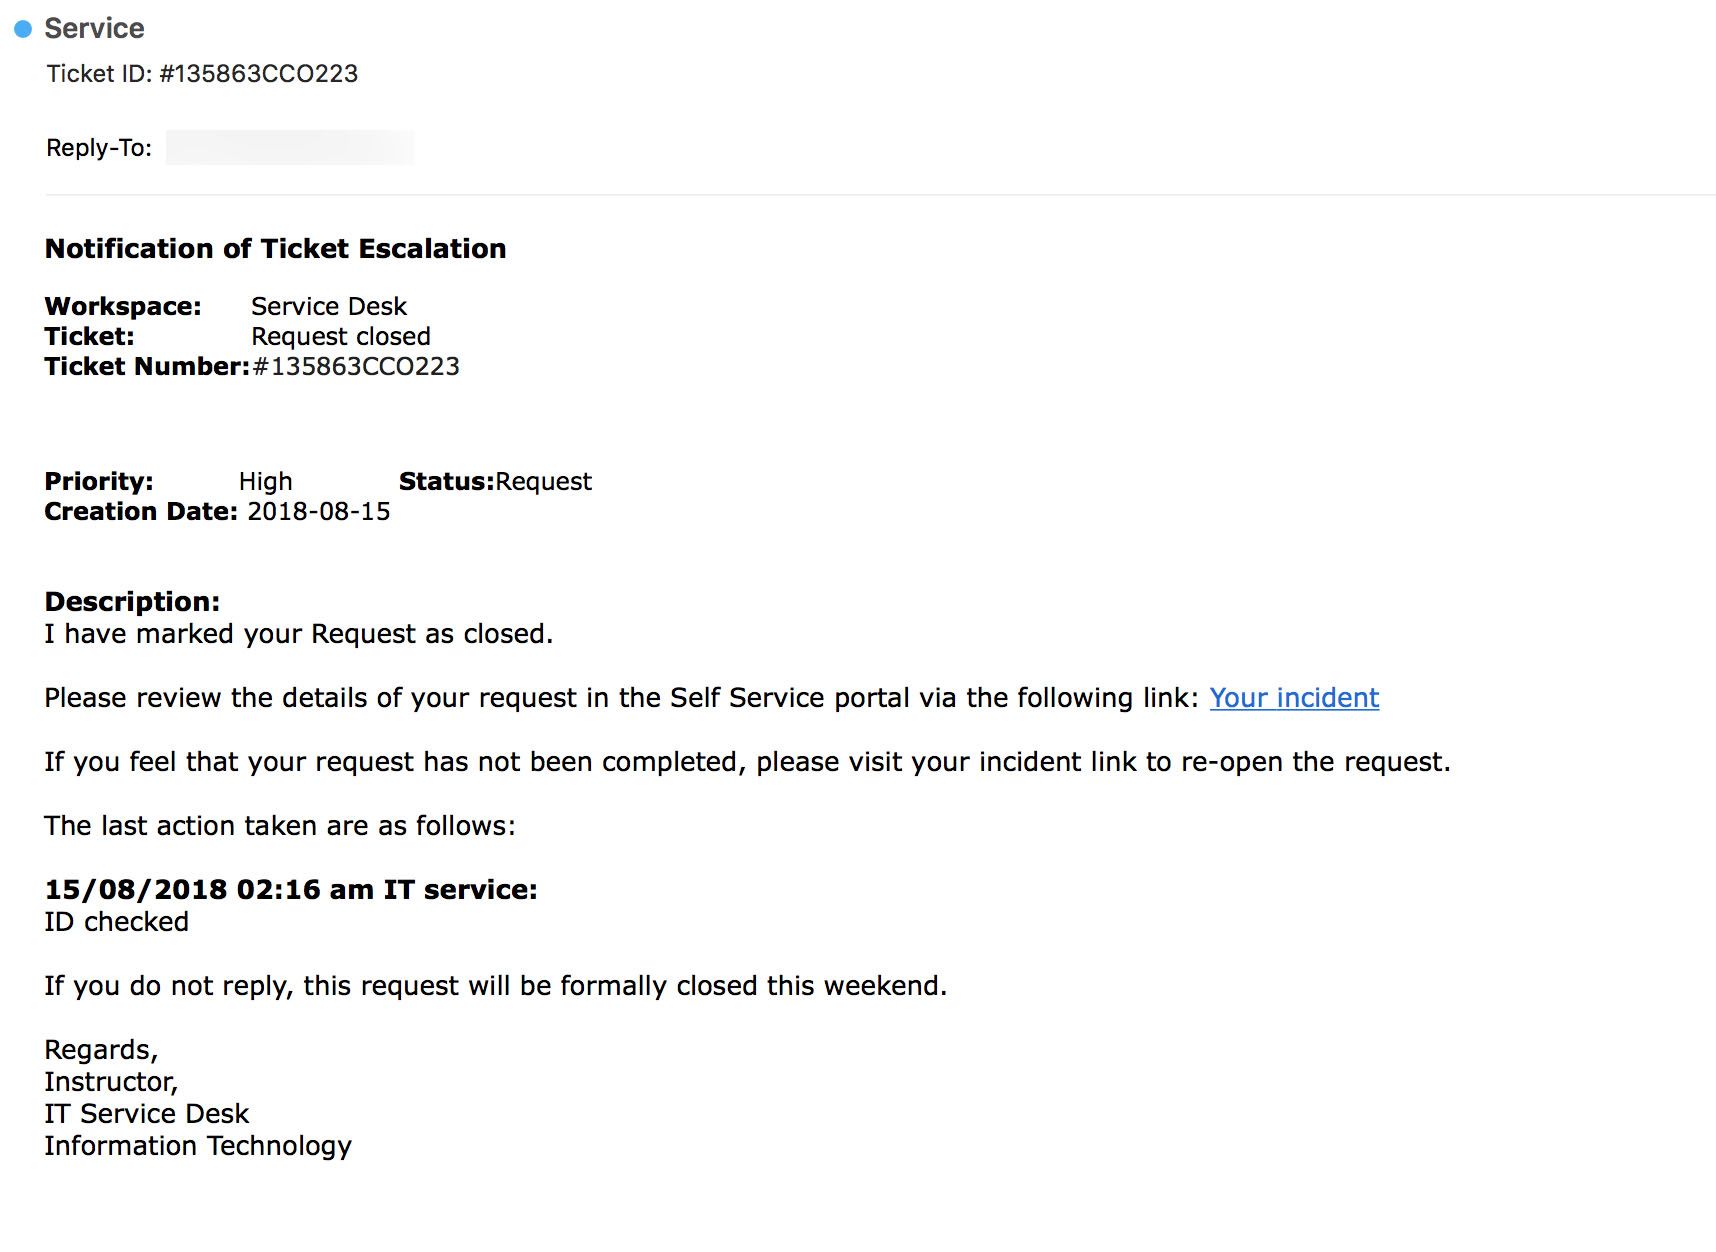 phishing message which includes a link whose address is not displayed